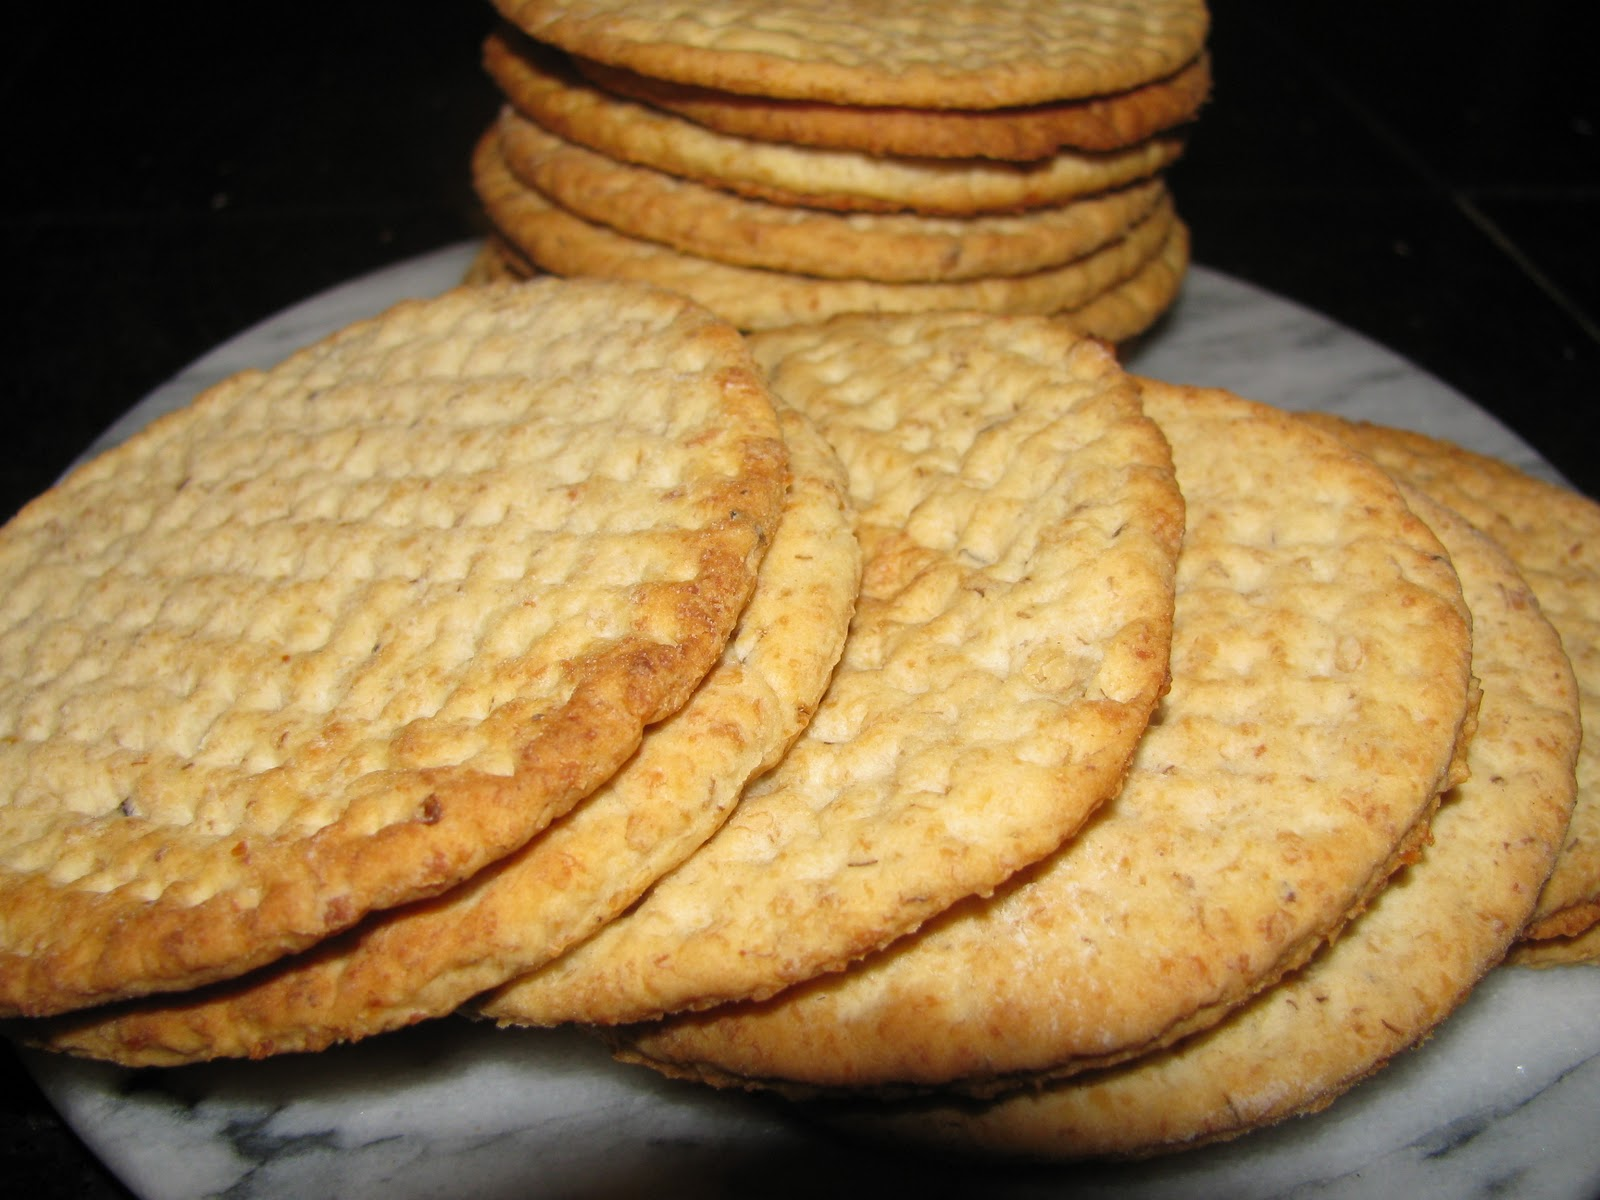 Simple Pleasures: Mamma's Havrekex - Mom's Oatmeal Crackers